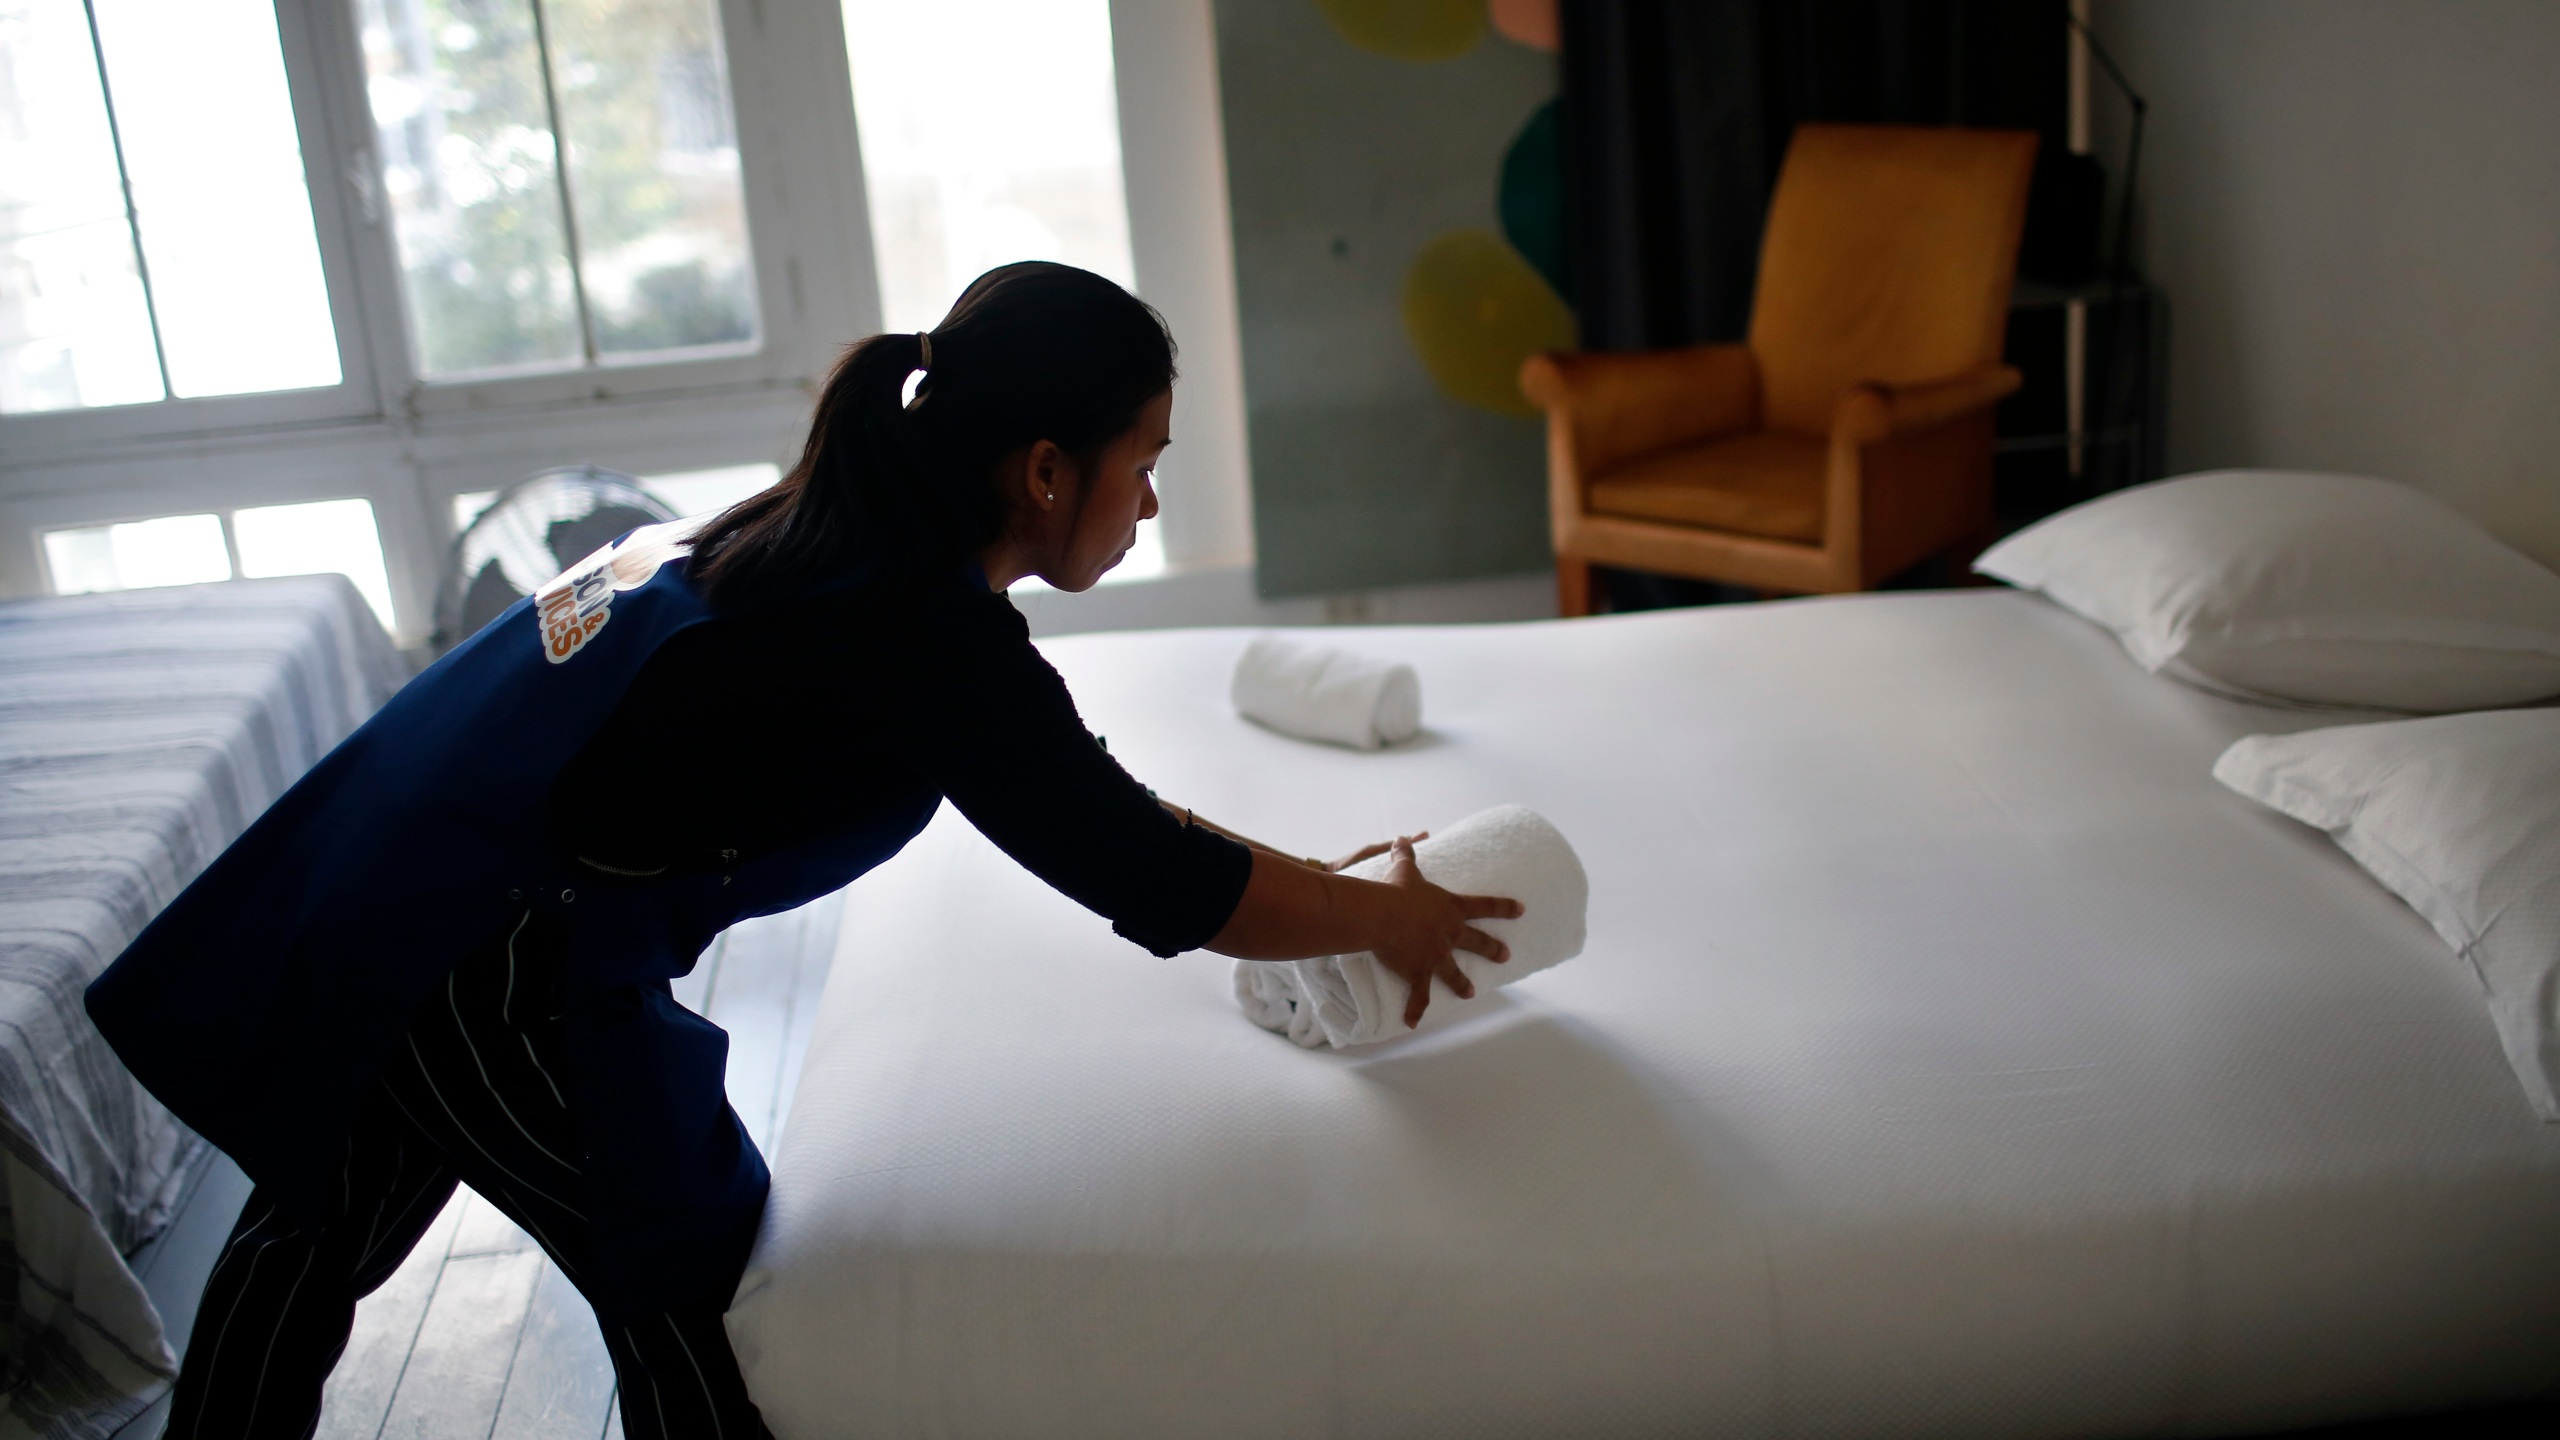 In this Thursday, Sept. 20, 2018 photo, a cleaning lady works in an apartment located on Airbnb in Paris. Airbnb said Thursday, Oct. 8, 2020 it will require hosts to comply with enhanced cleaning procedures as part of its effort to reassure guests and local officials during the coronavirus pandemic. (AP Photo/Thibault Camus, file)